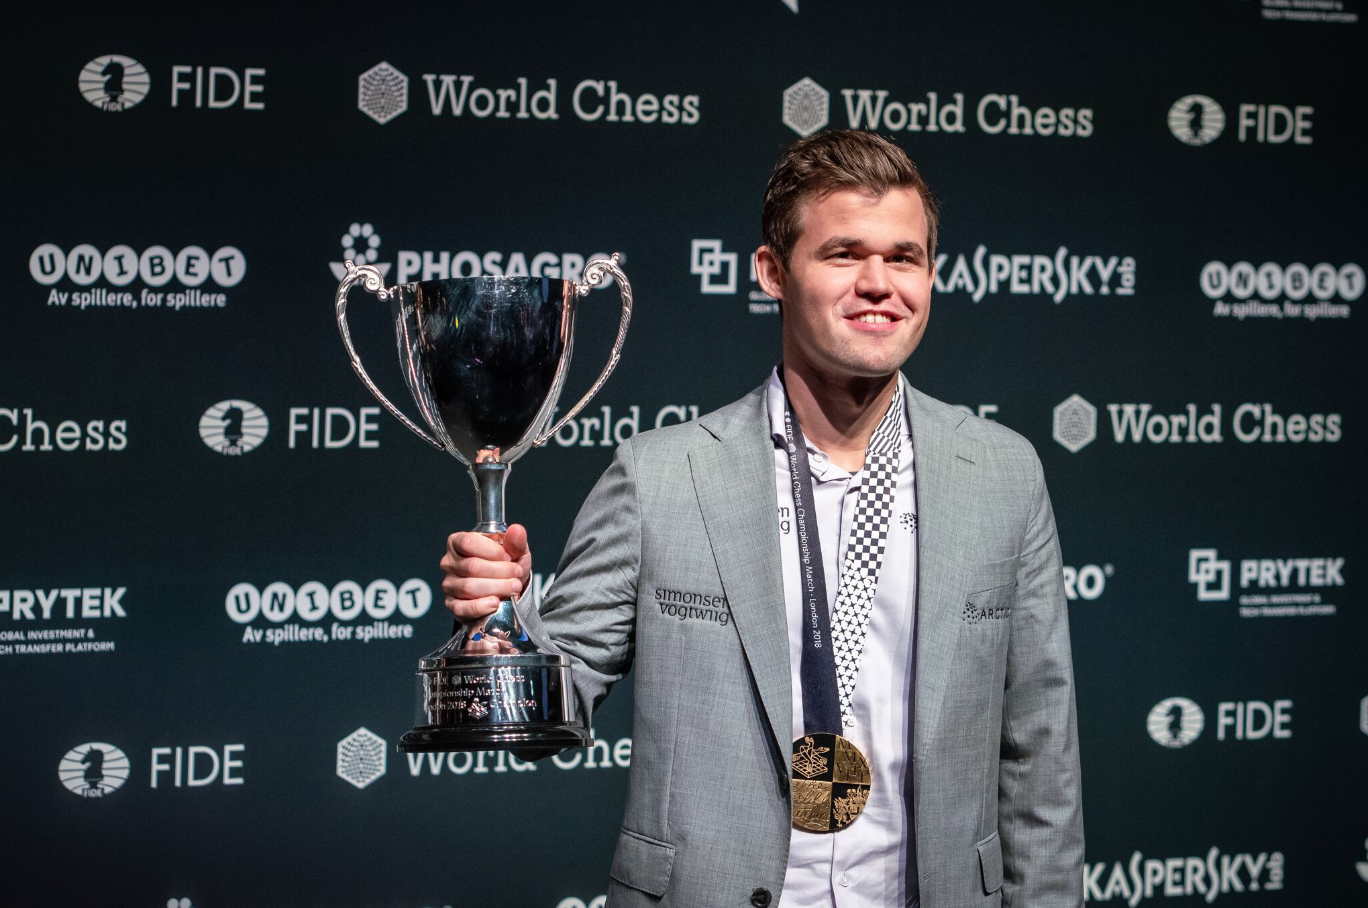 On Chess: Tough Battles And High-Quality Chess At The Grenke